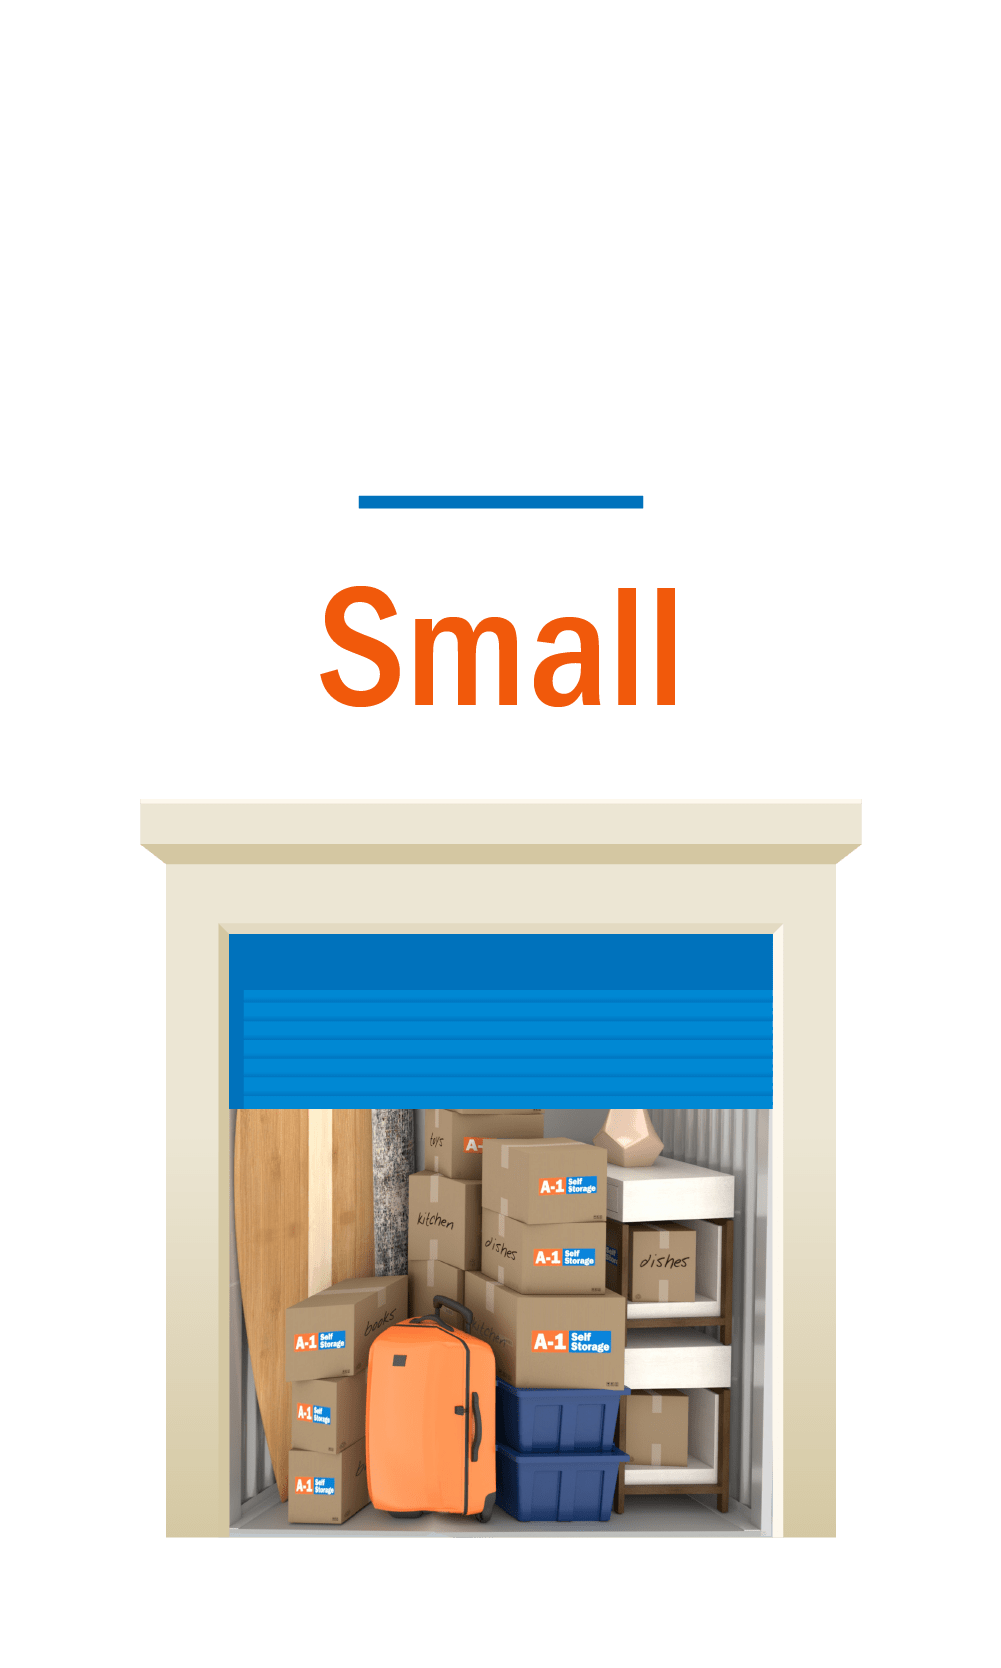 Small storage unit graphic with door open